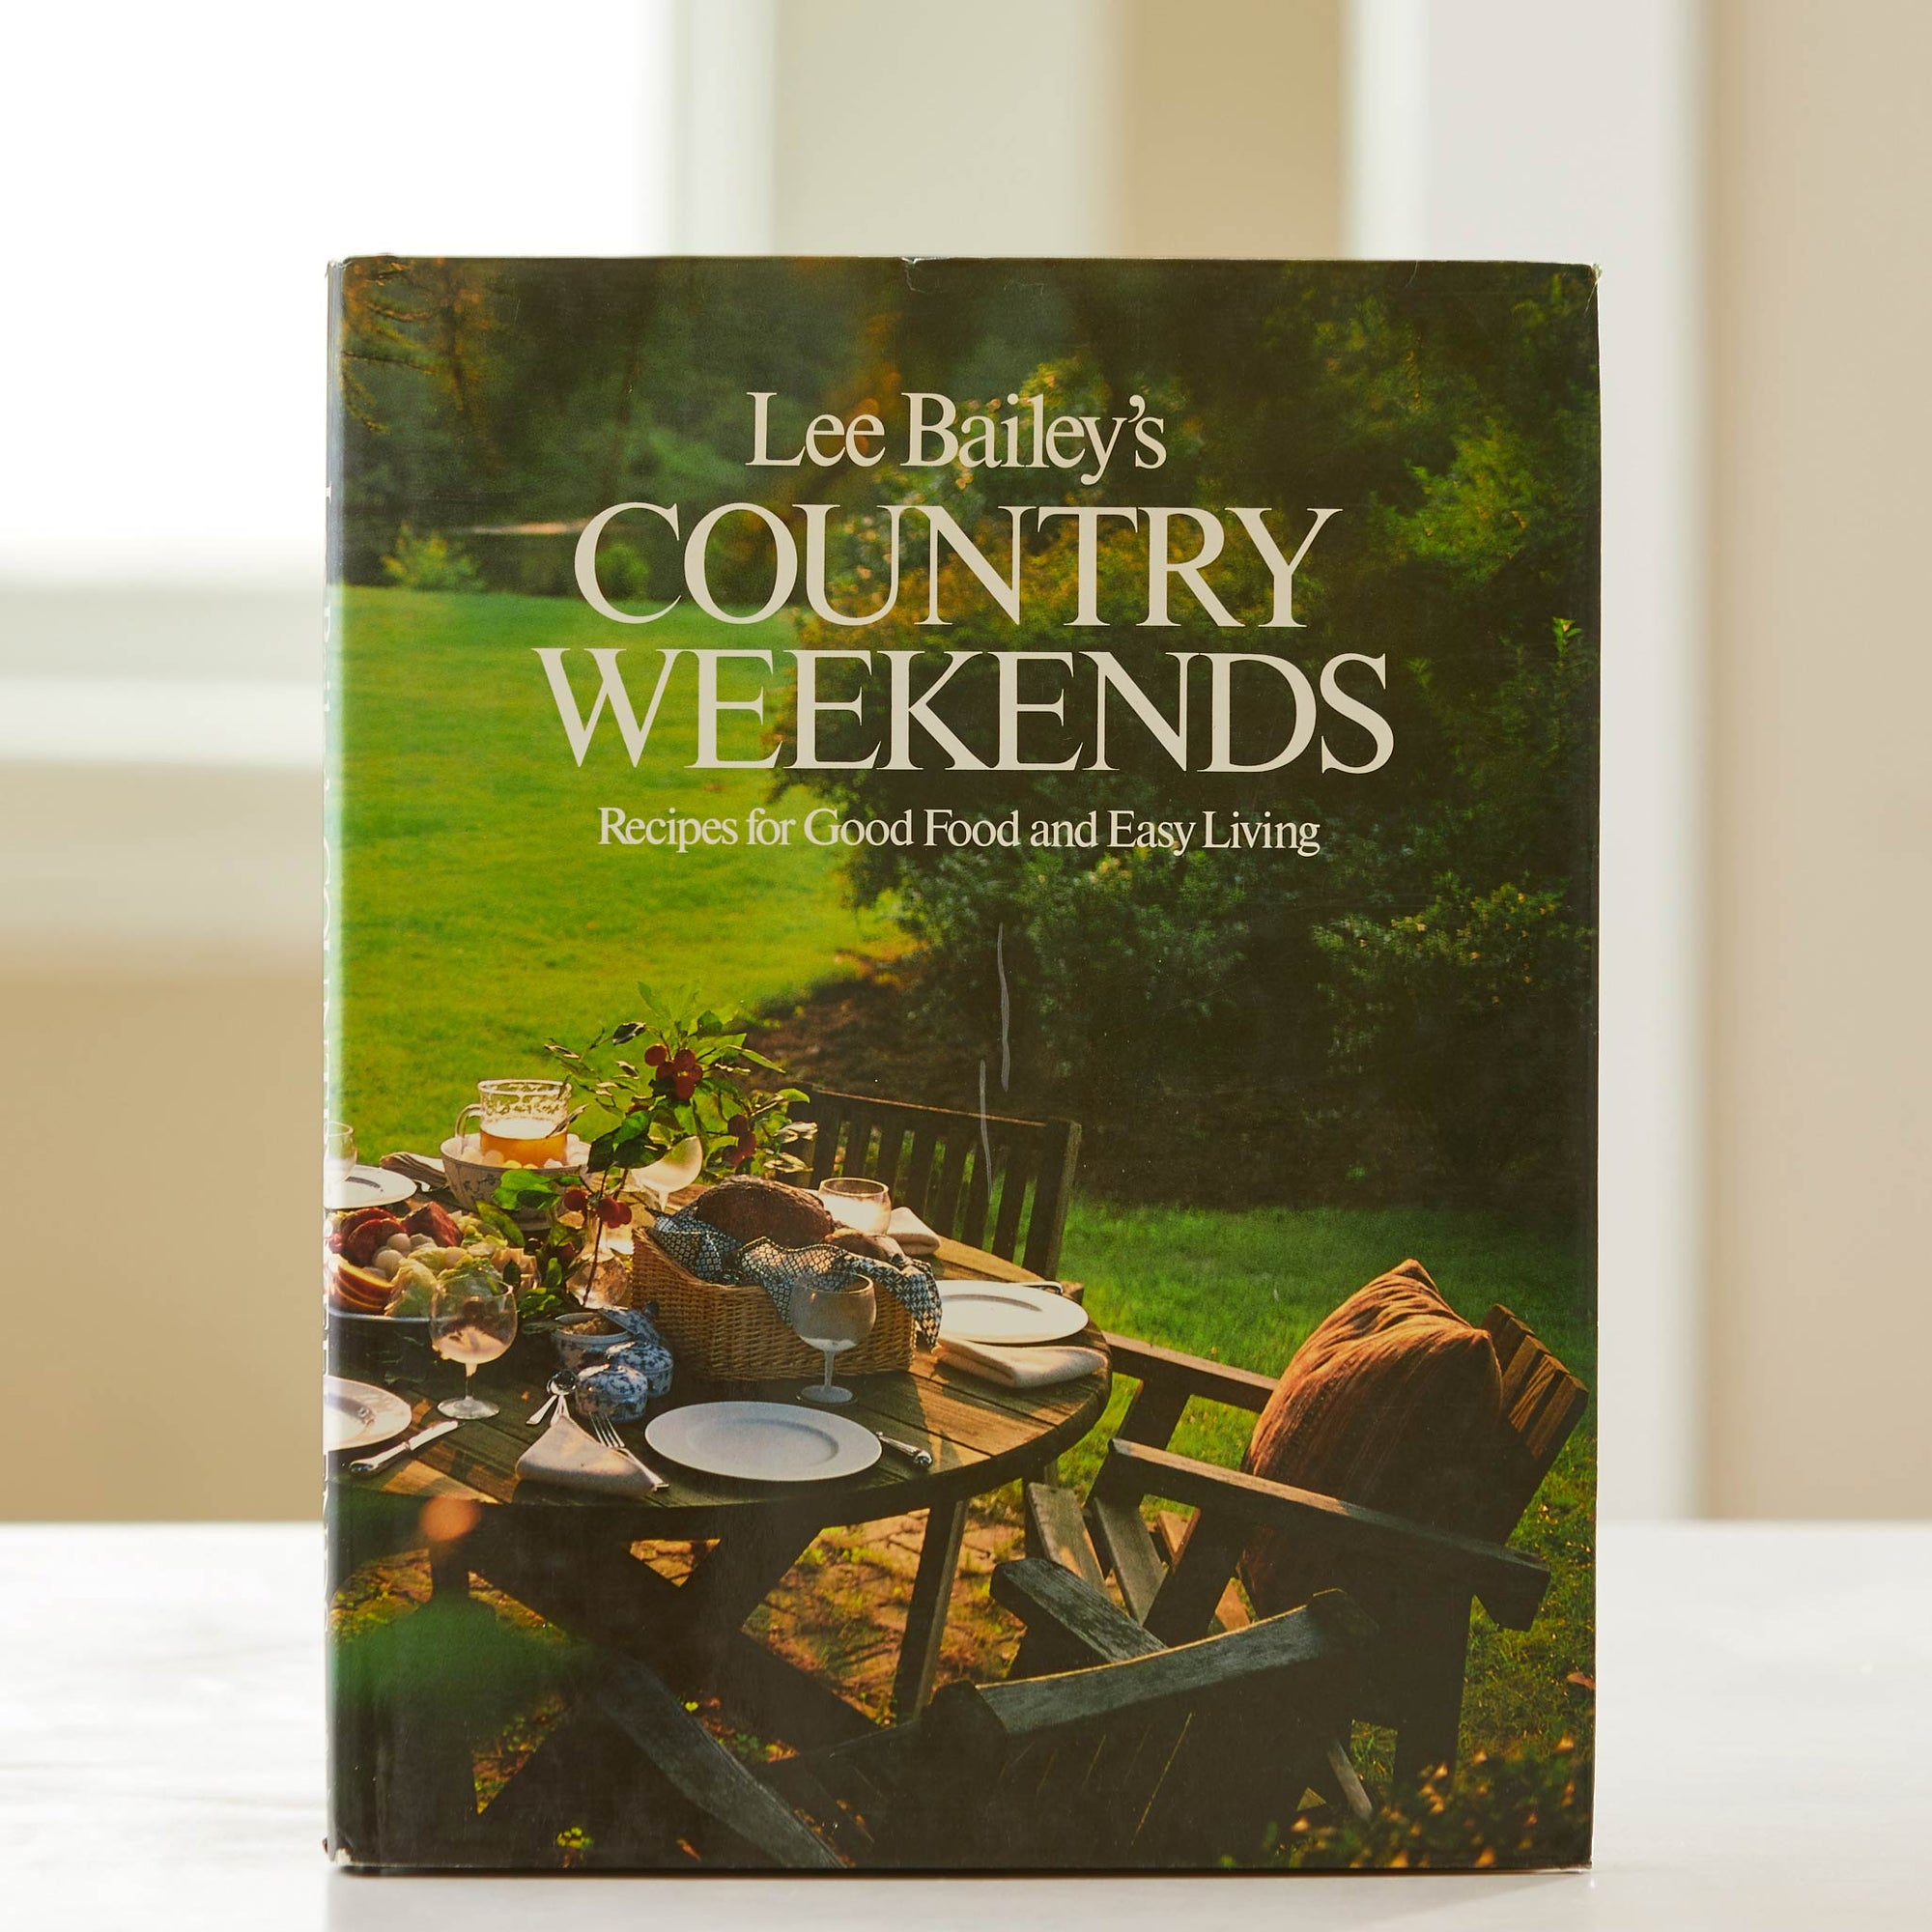 Lee Bailey's County Weekends. Best farm to table cookbook. A taste of country cooking with great weekend dinner recipes. Best breakfast cookbook.